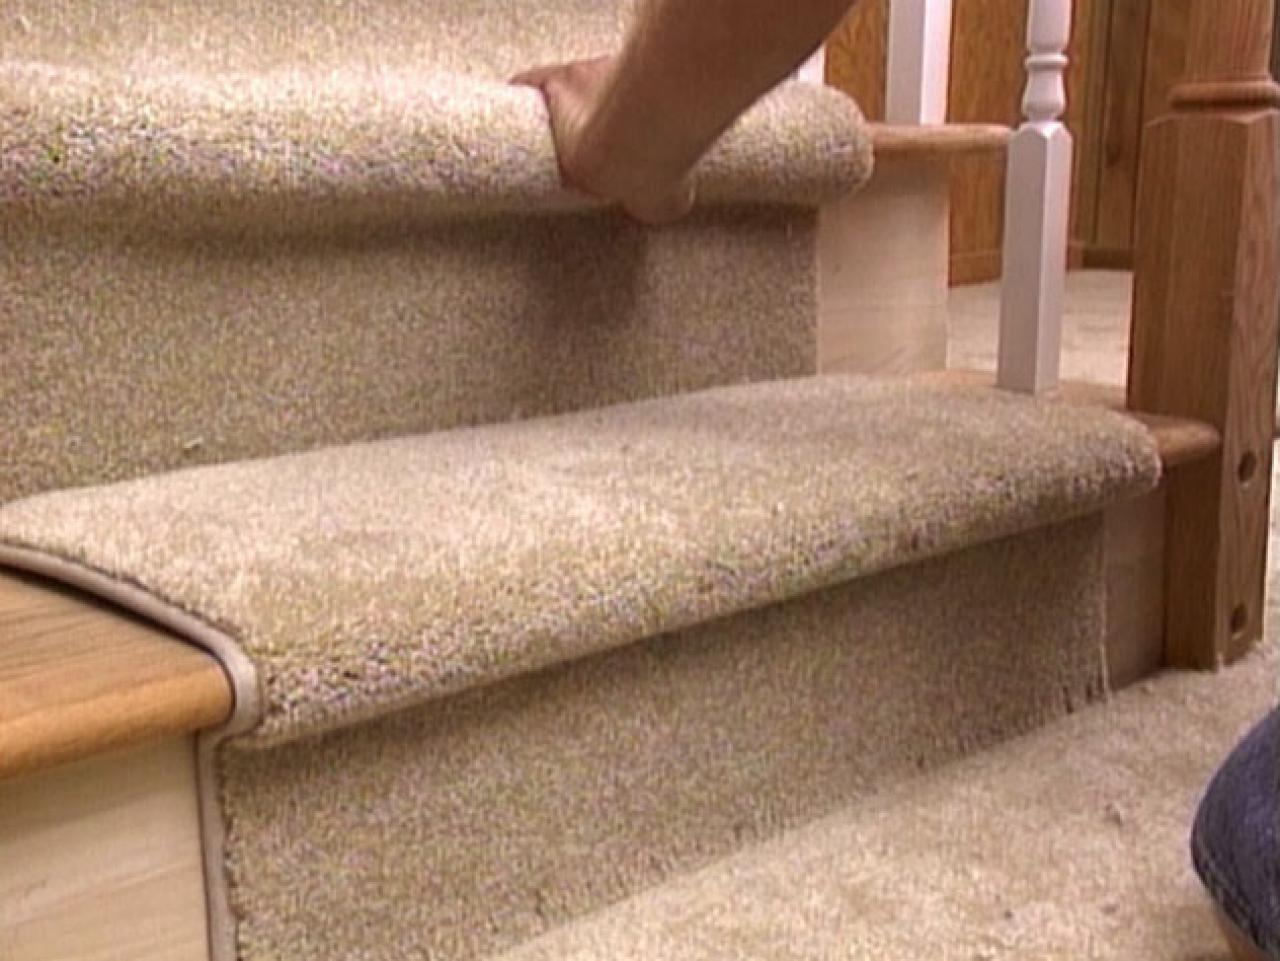 How To Install A Carpet Runner On Stairs Hgtv Regarding Stair Tread Carpet Rods (Image 6 of 15)